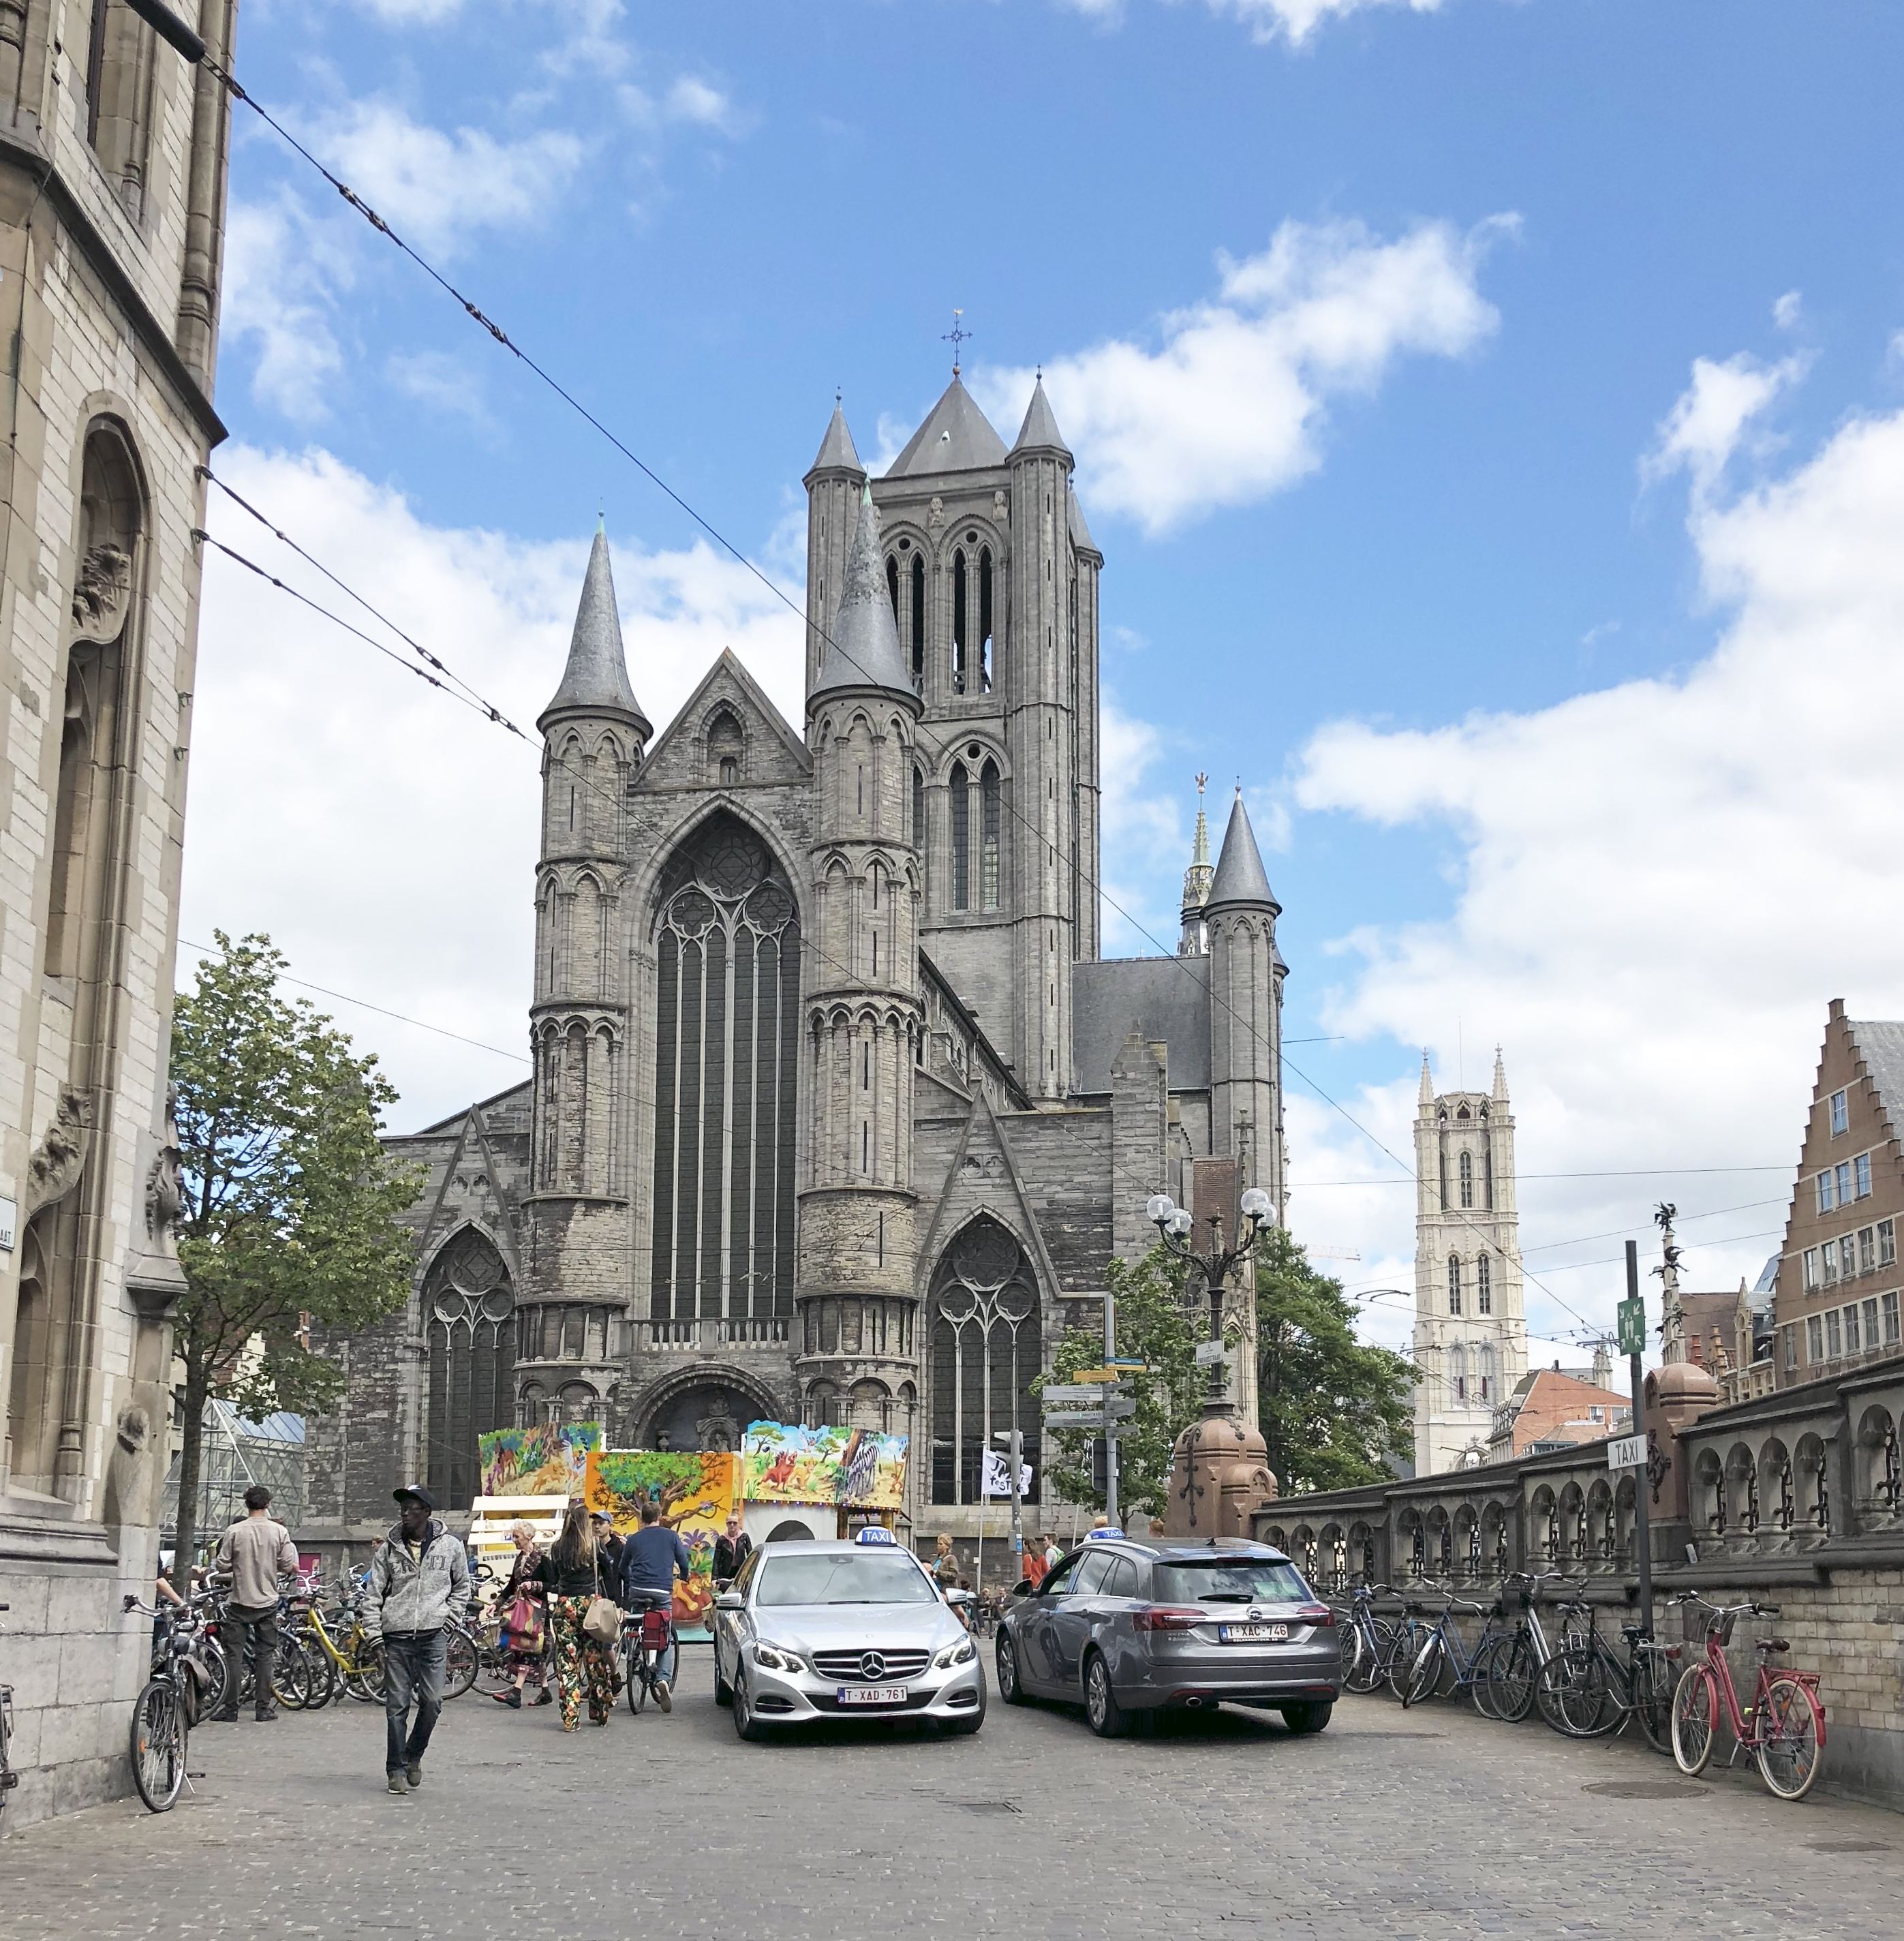 St. Nicholas' Church Ghent Belgium